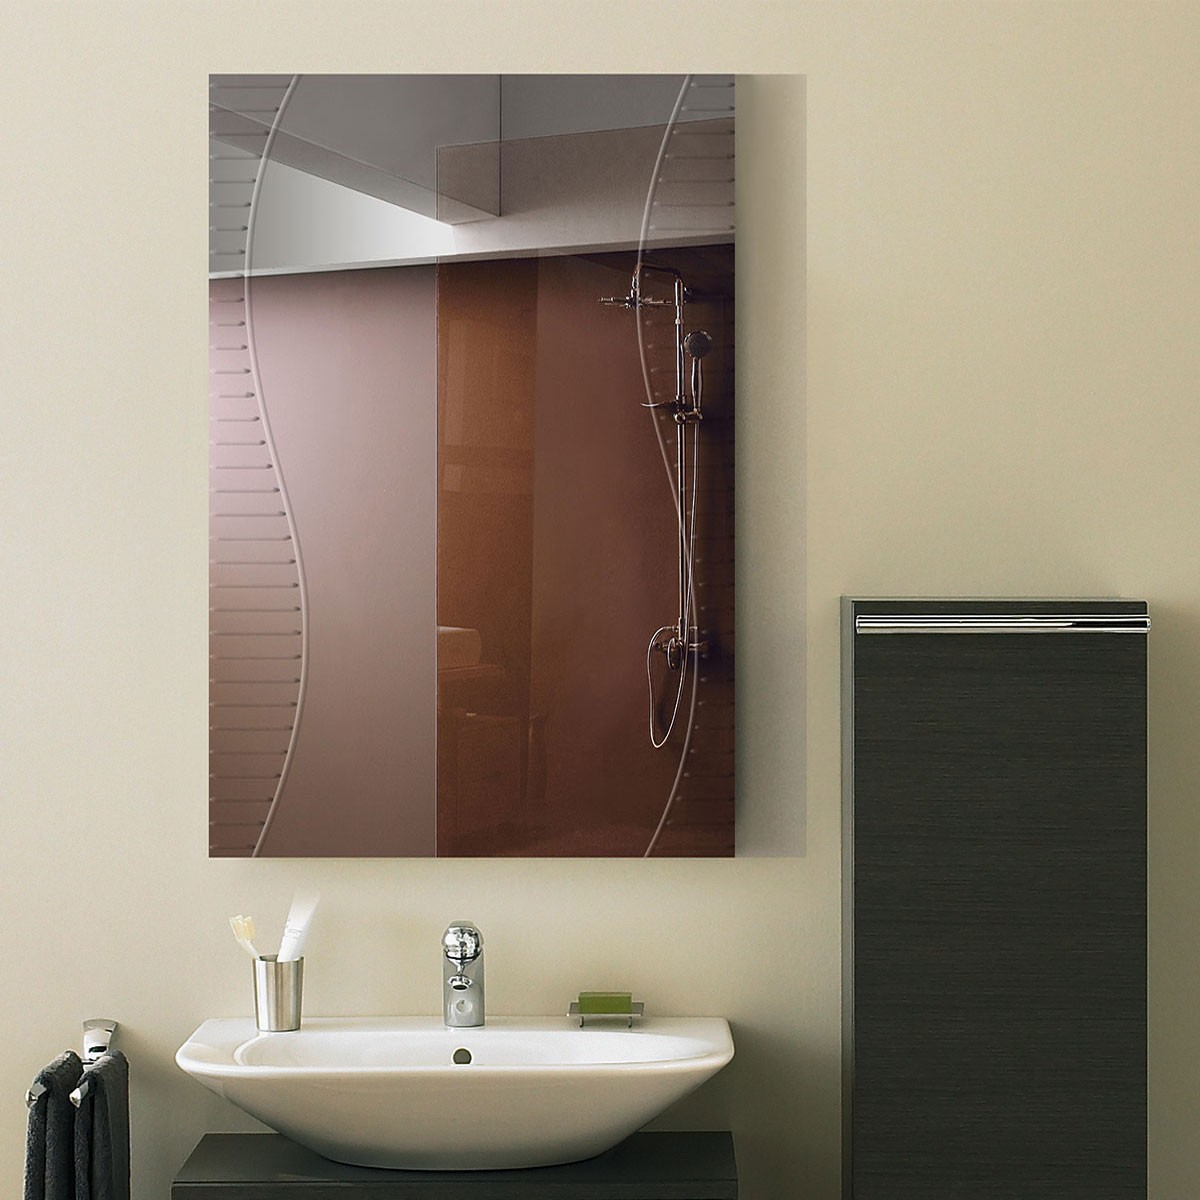 36 x 24 po miroir mural salle de bain classique rectangulaire sans cadre accrochage vertical. Black Bedroom Furniture Sets. Home Design Ideas